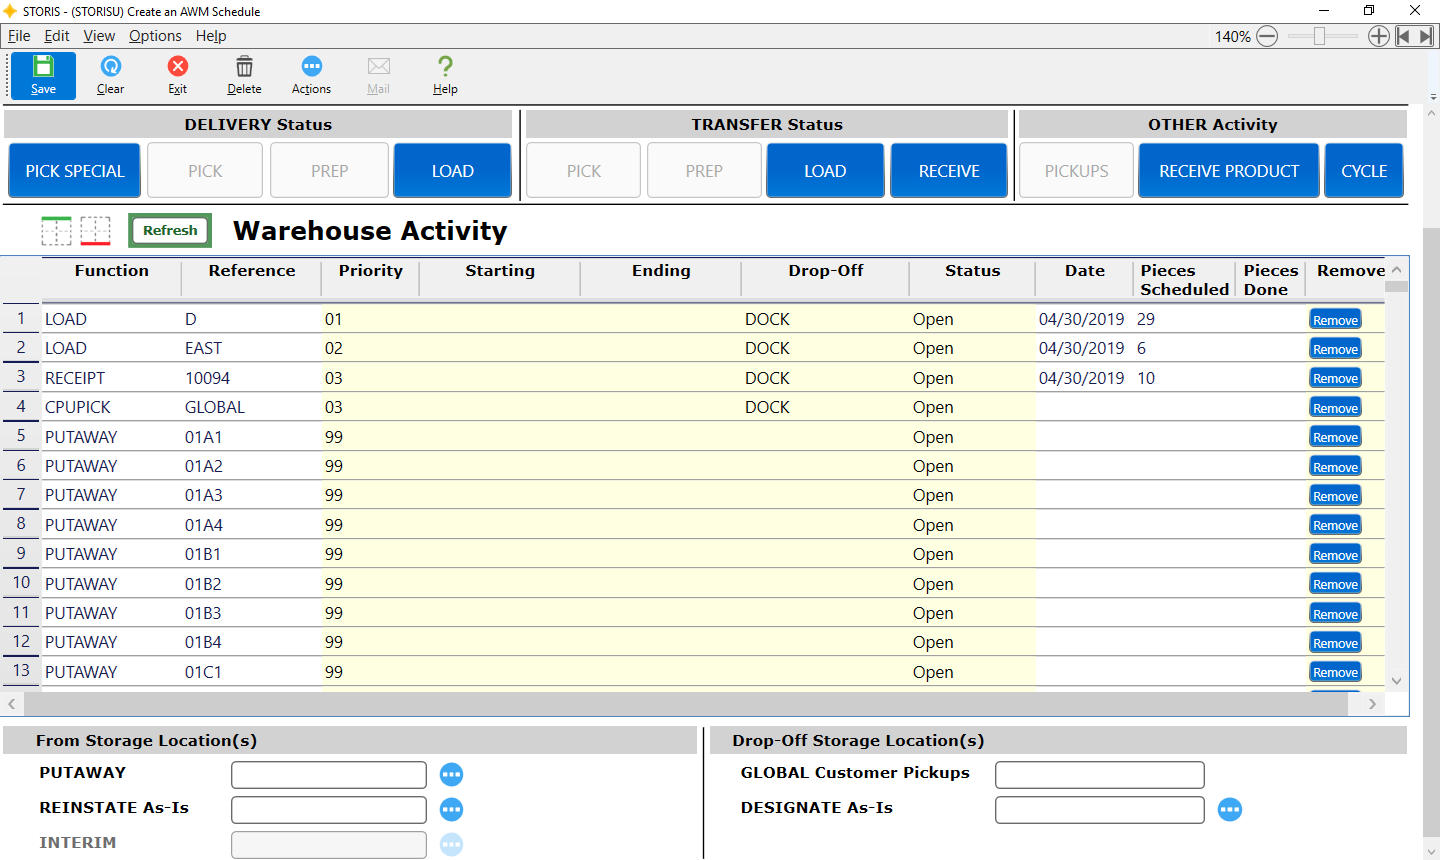 Inventory Management Software for Furniture Retailers | STORIS